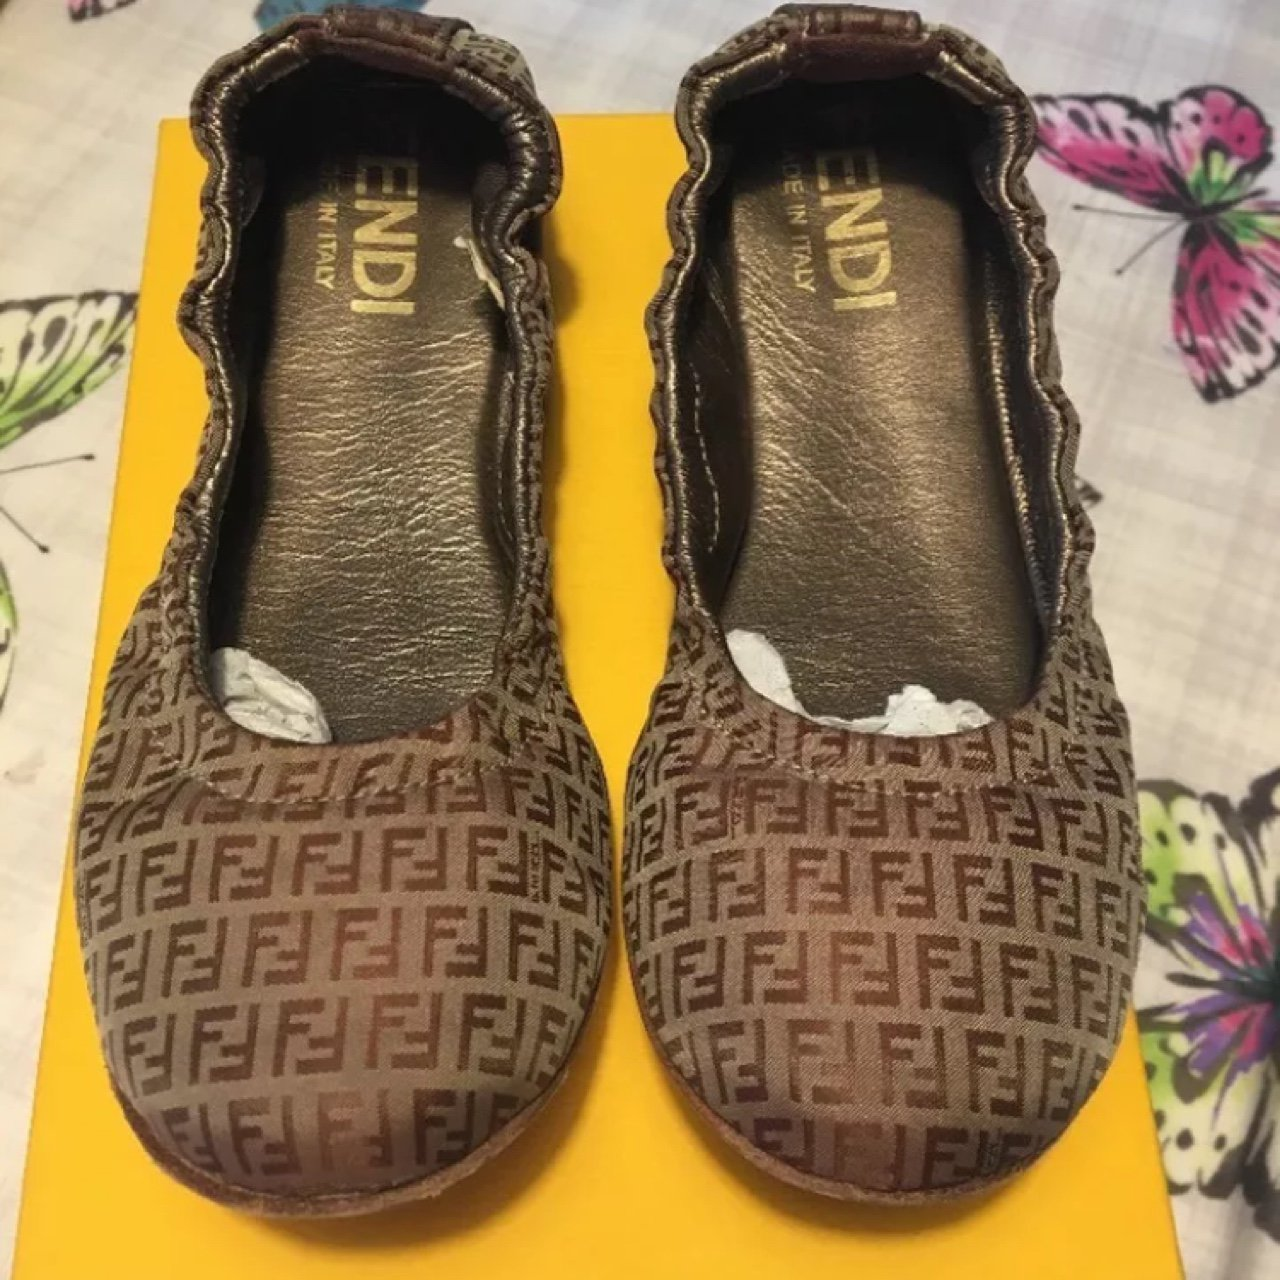 02fdc29a91bf Girls FENDI shoes size 30   UK 12 worn once! £130 rrp. - Depop